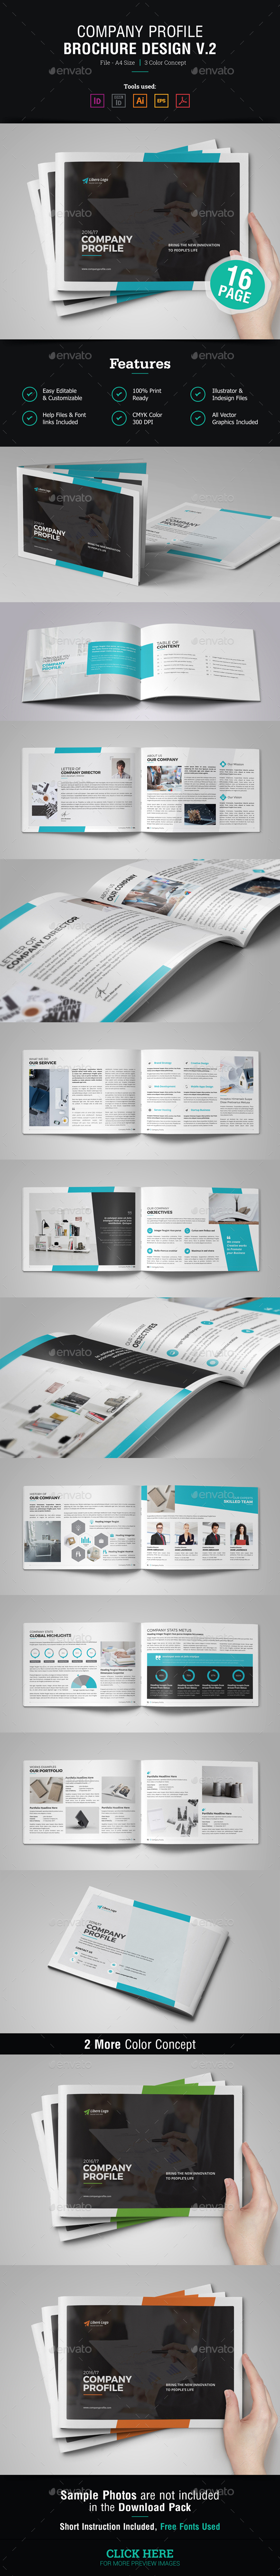 Company Profile Brochure v2 - Corporate Brochures